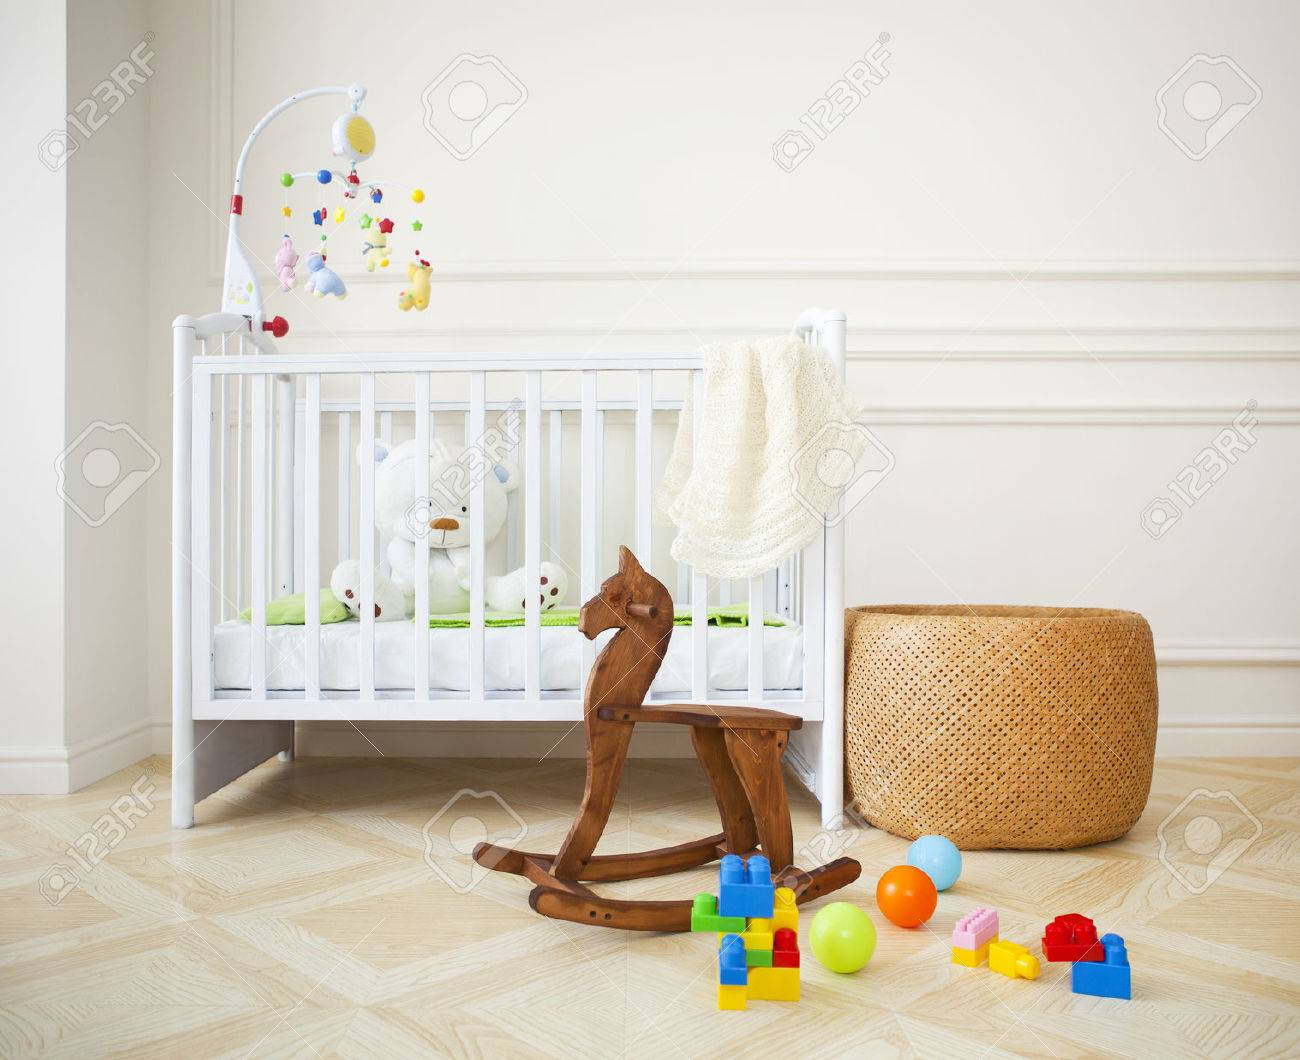 Empty nursery room with basket, toys and wooden horse Stock Photo - 31637897